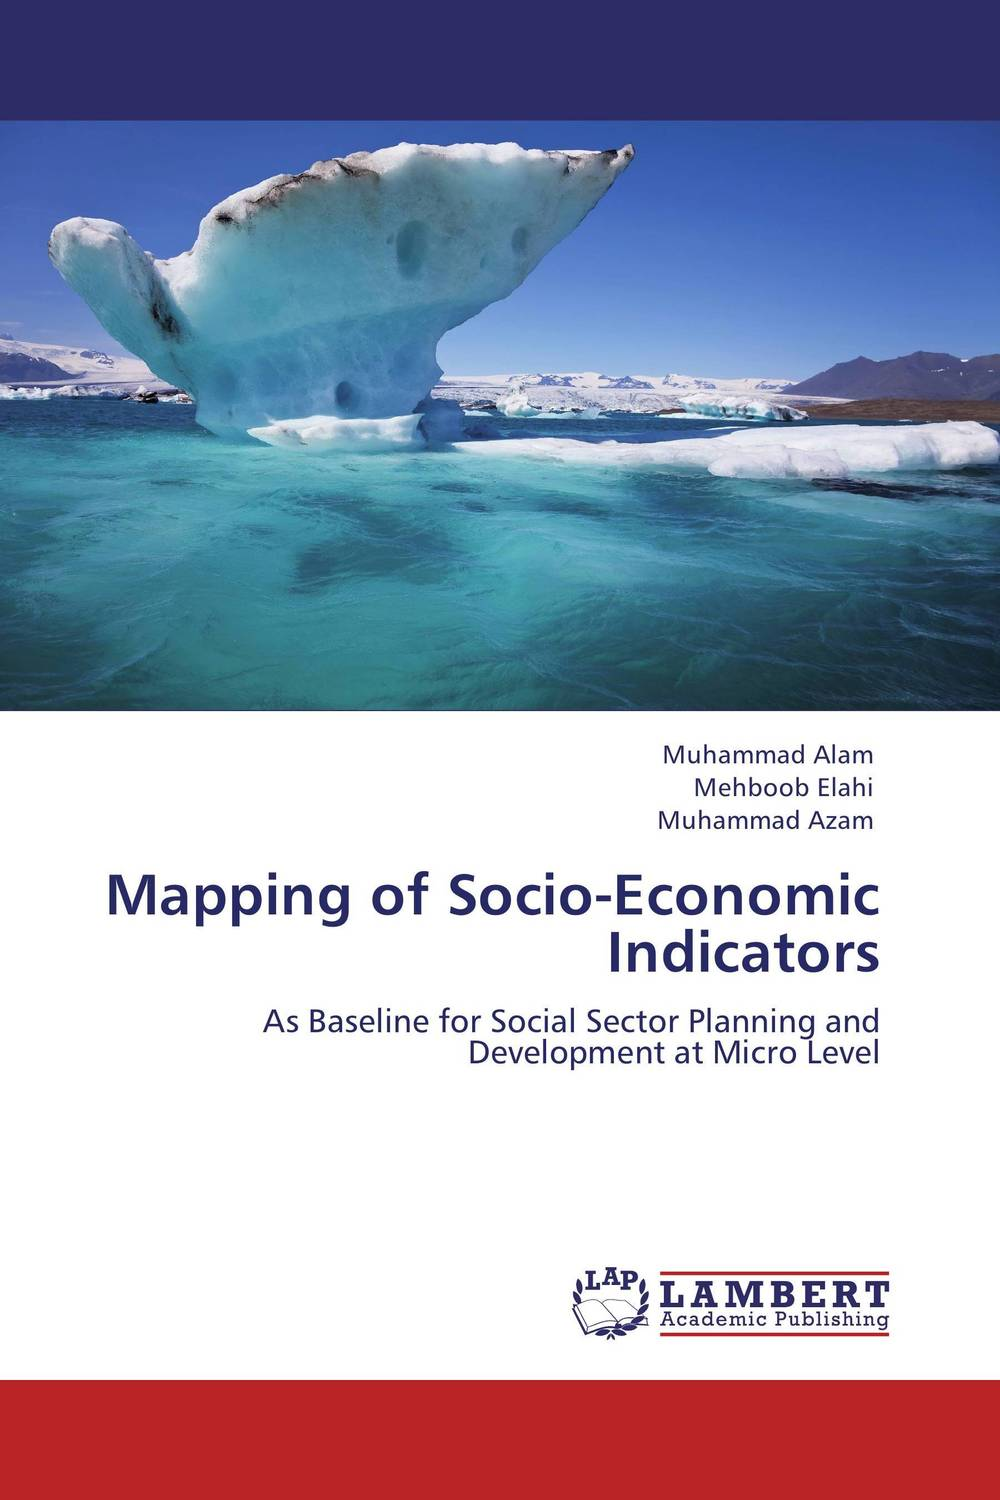 Mapping of Socio-Economic Indicators michael griffis economic indicators for dummies